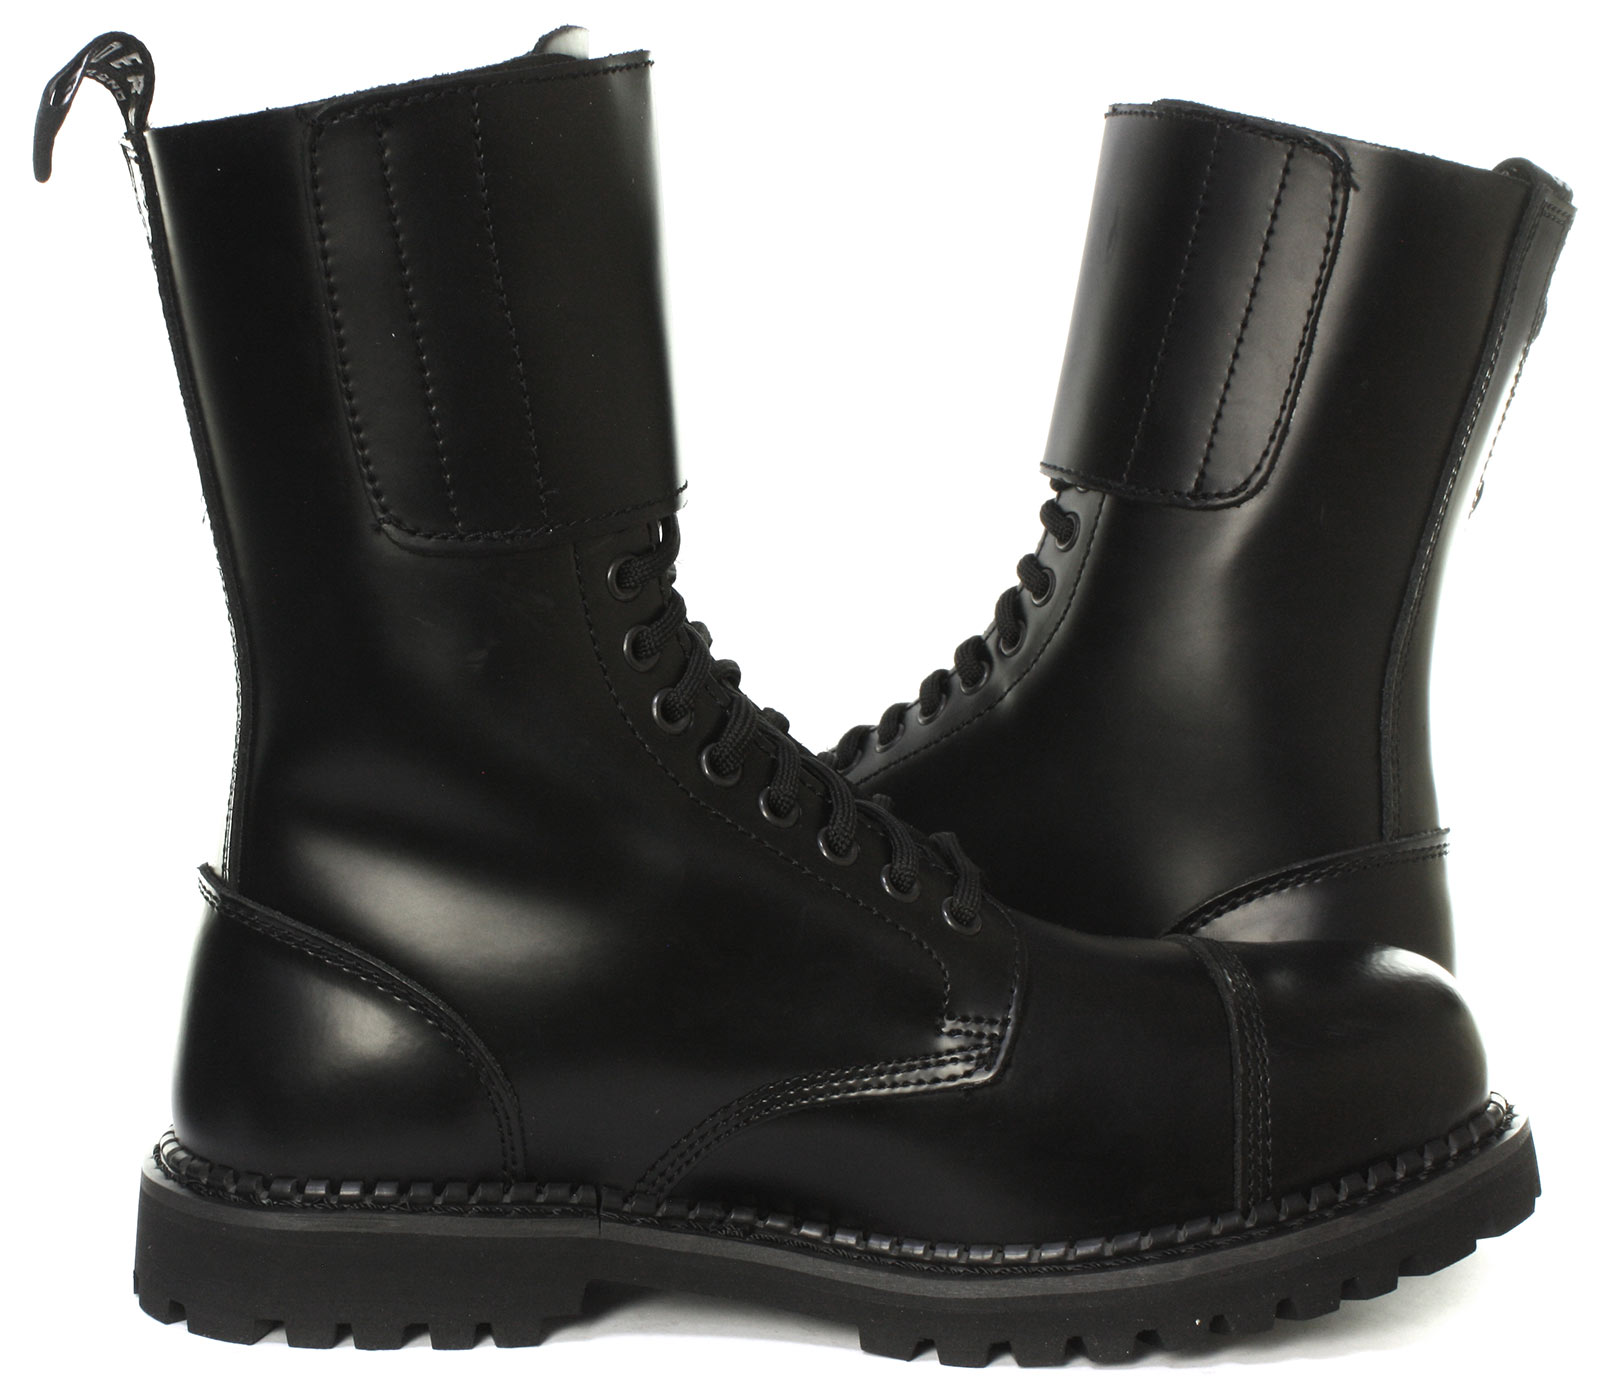 Grinders-Camelot-CS-14-Eyelet-Twin-Buckle-Unisex-Steel-Toe-Boots-ALL-SIZES thumbnail 3